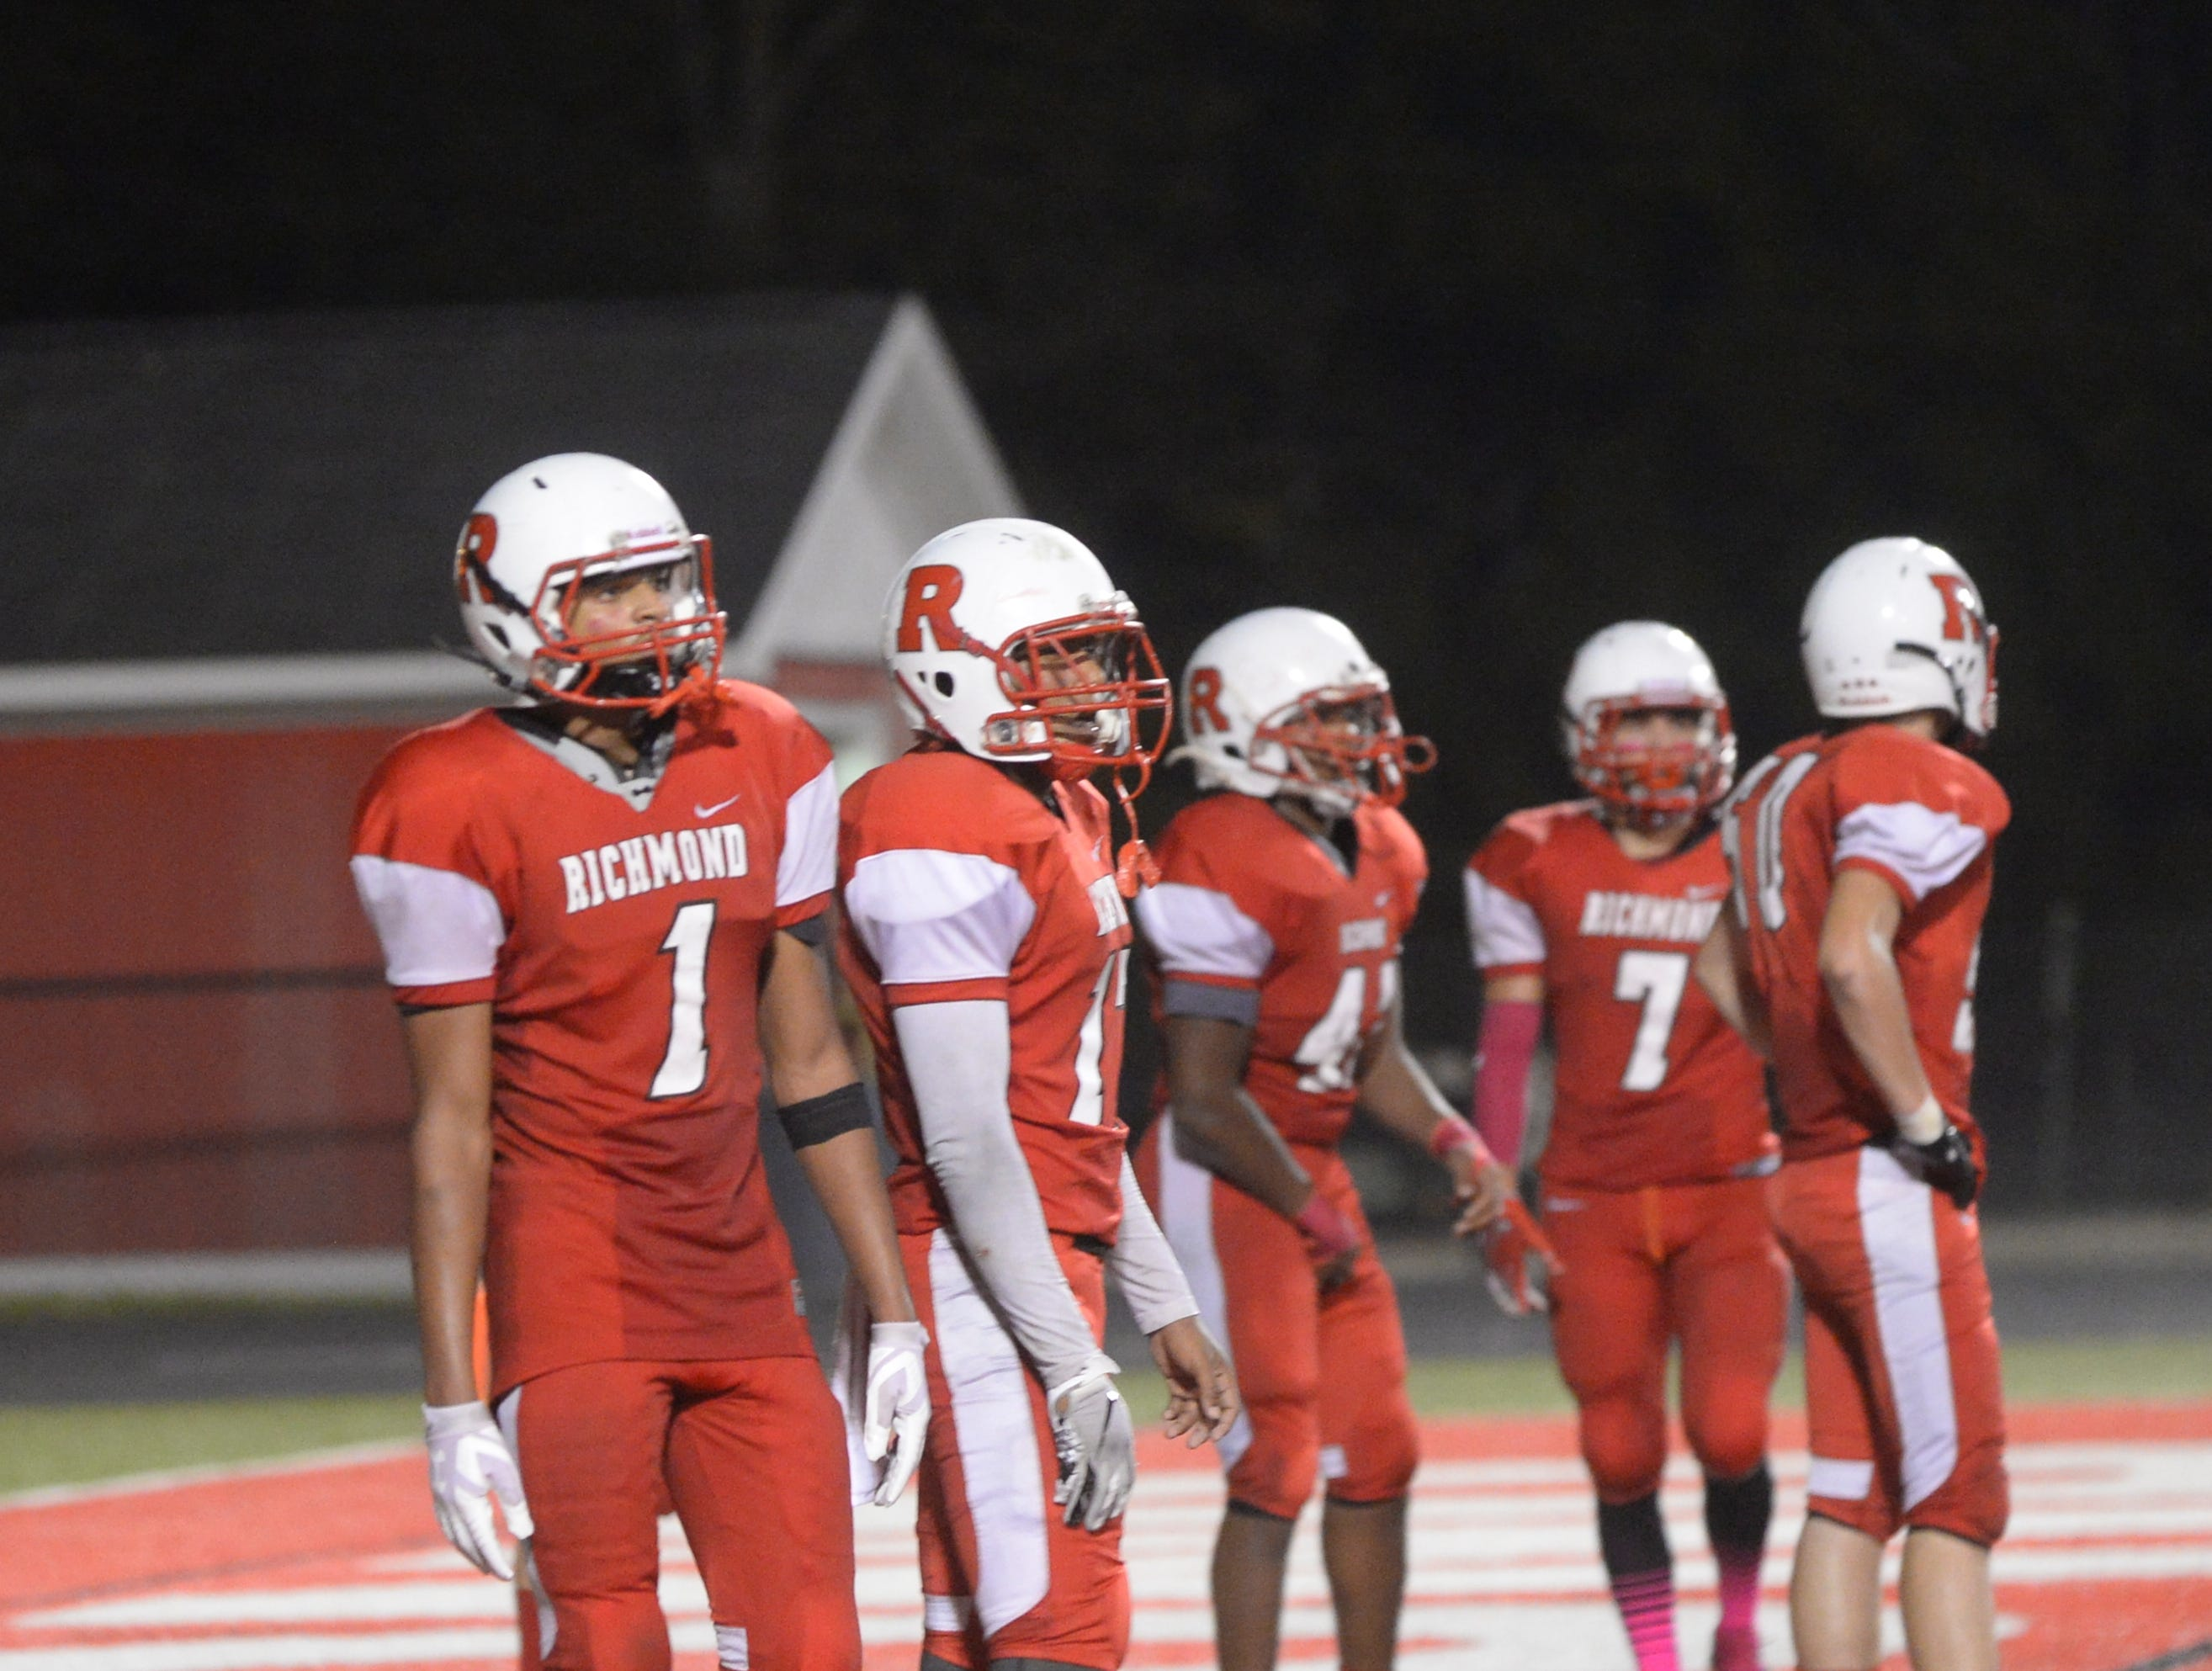 Members of the Richmond High School football team during the Richmond High School football team's  27-26 loss to Anderson Friday, Oct. 5, 2018 at Lyboult Field.